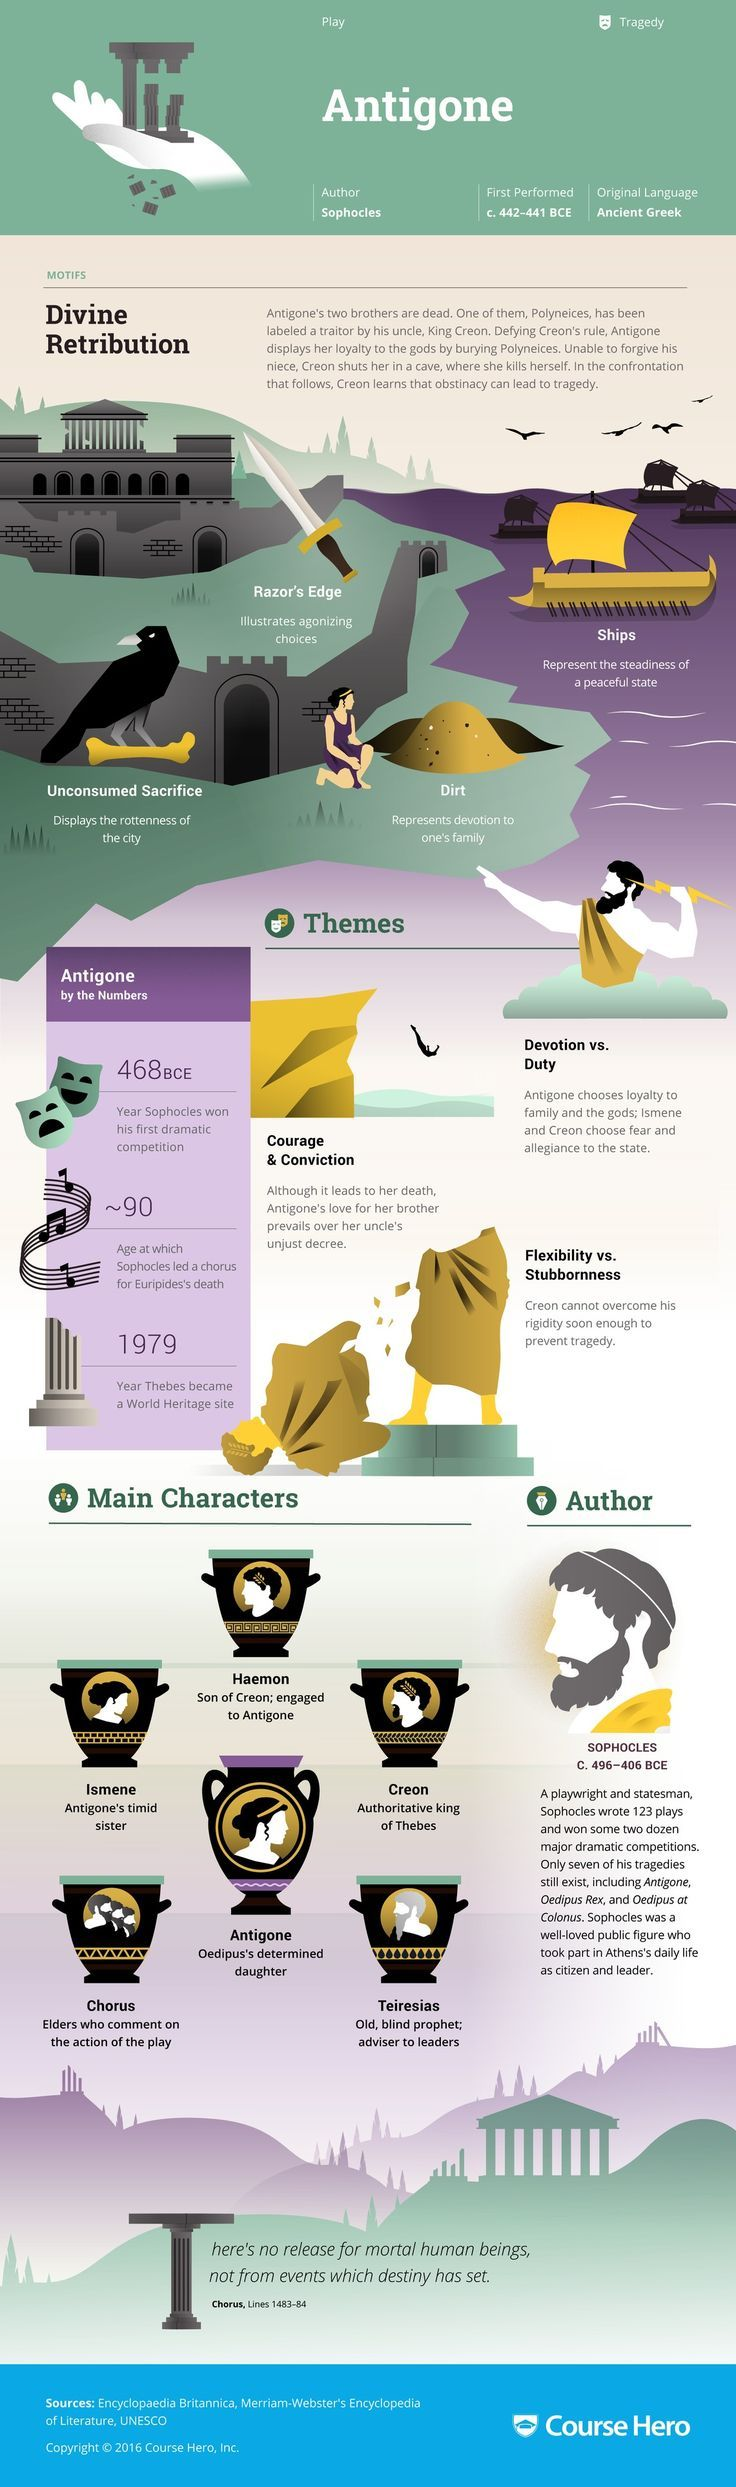 Antigone Infographic | Course Hero